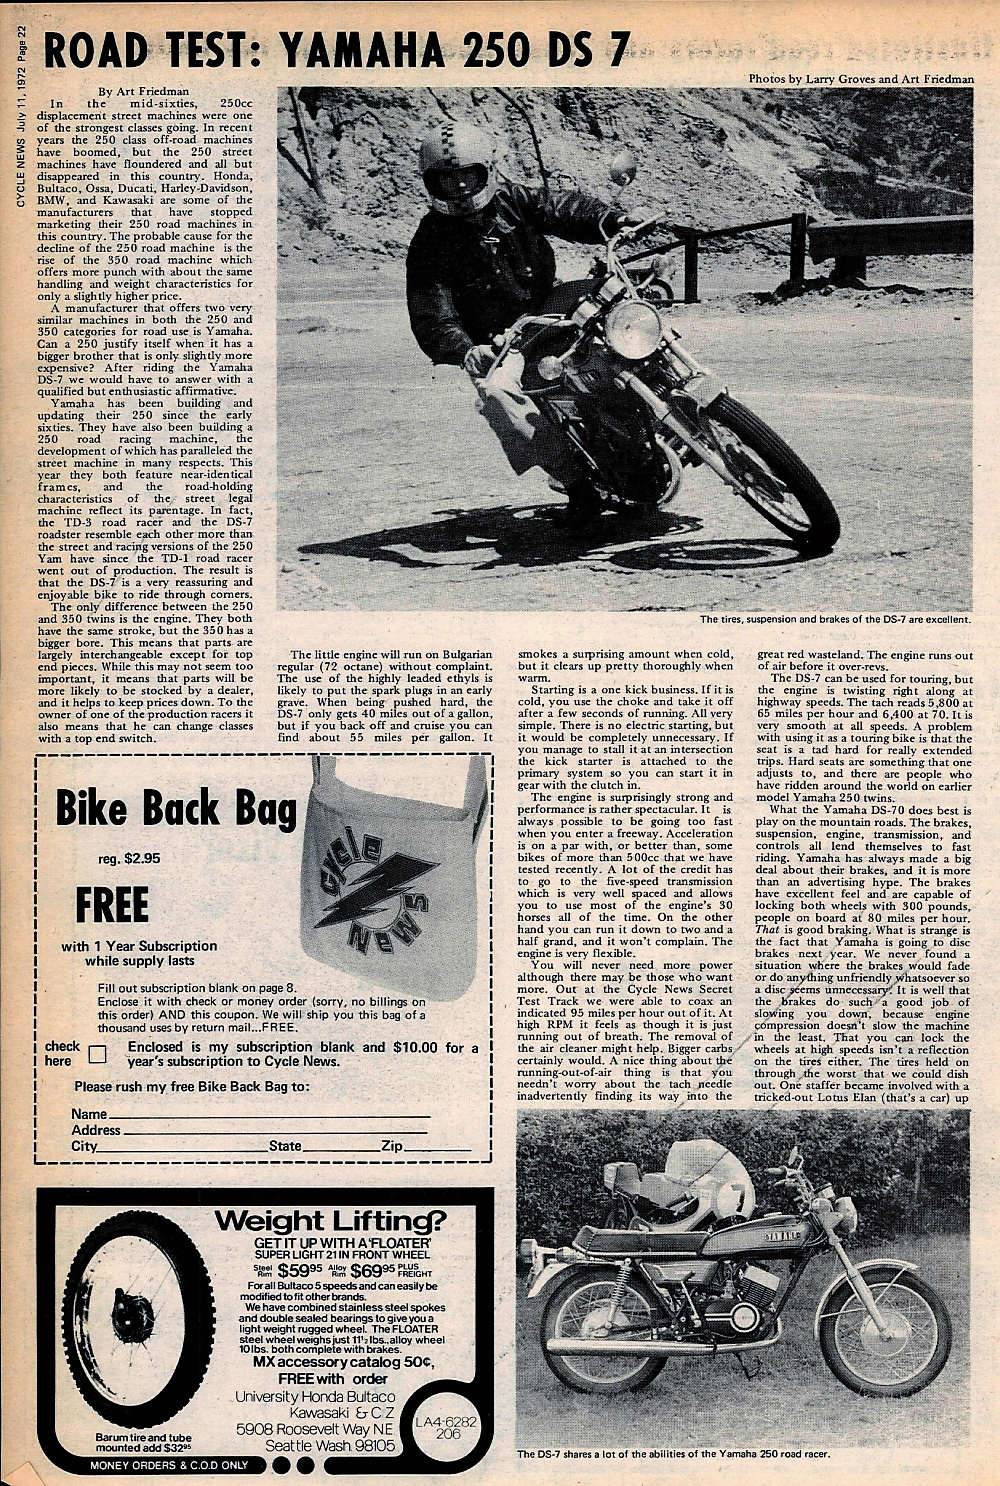 1972 Yamaha 250 DS 7 road test.1..jpg